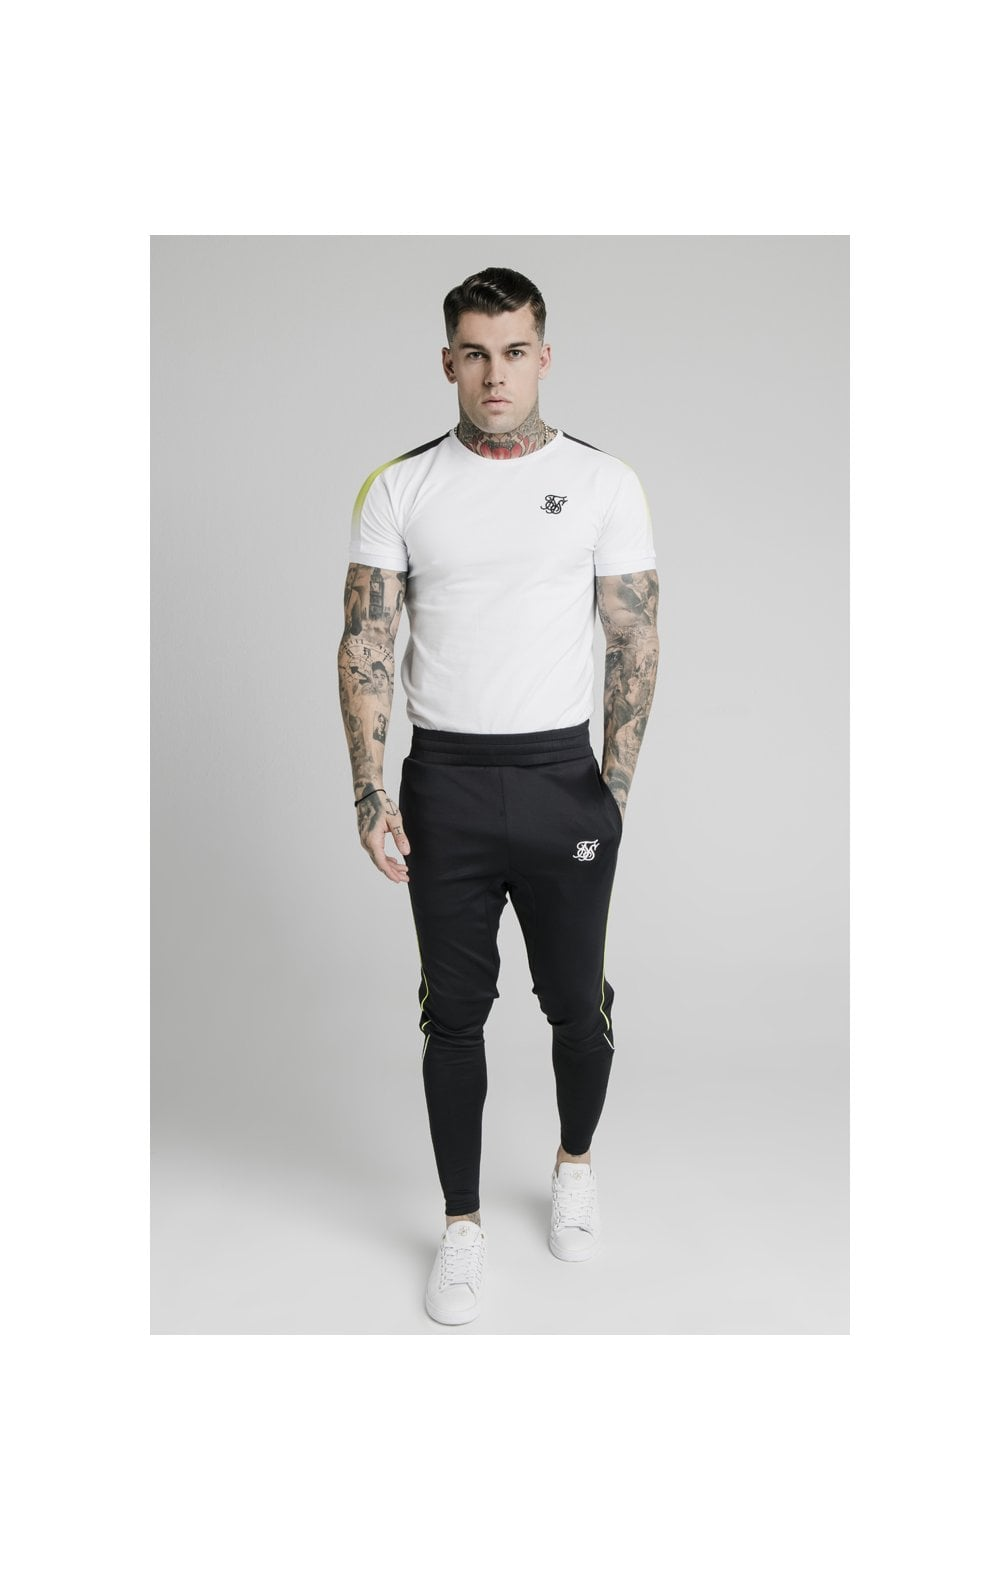 SikSilk S/S Fade Panel Tech Tee - White (3)